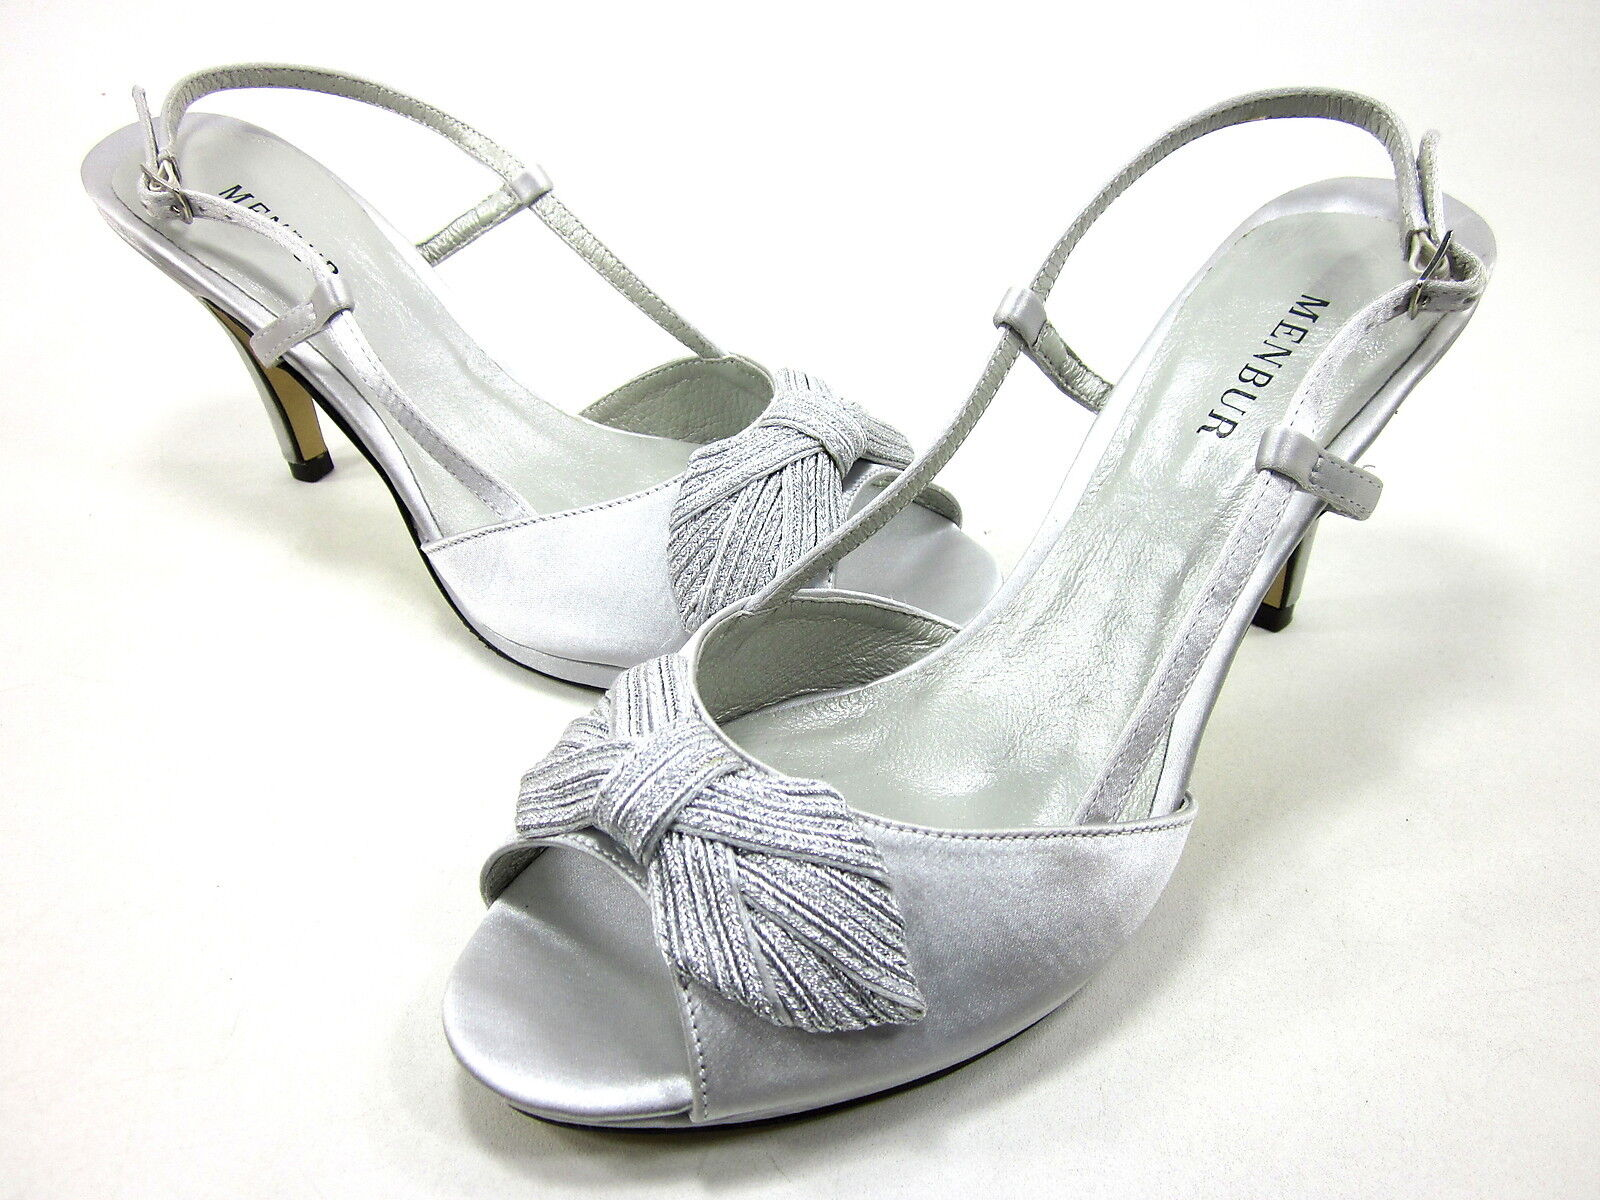 MENBUR, CECCARELLI PEEP-TOE PUMP, PEARL GREY, US 10M, EURO 40, NEW WITHOUT BOX